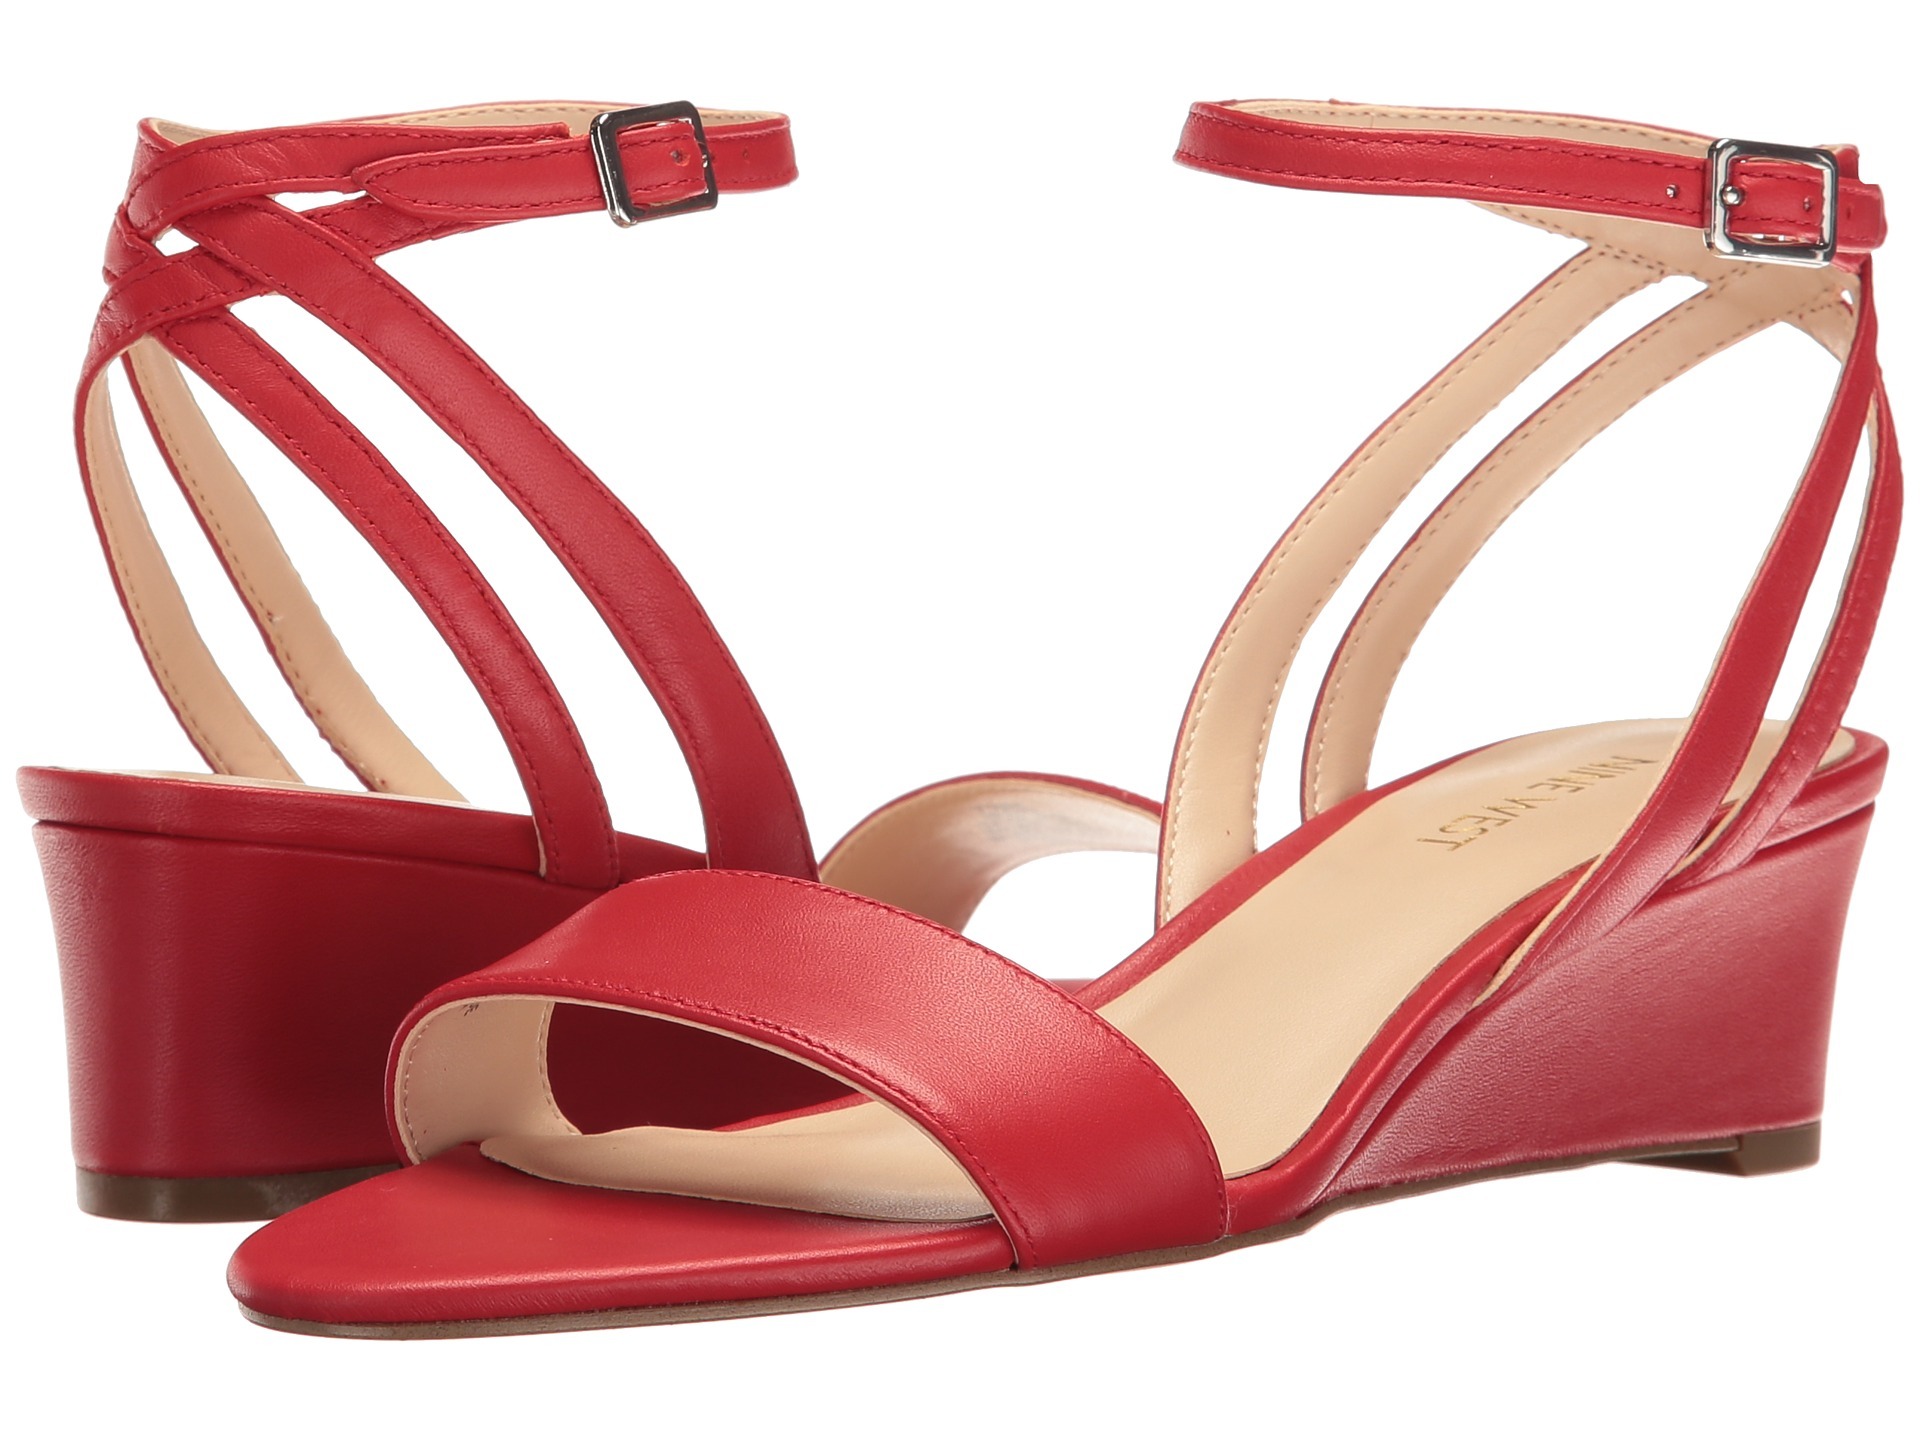 Nine West Lewer Red Leather Zappos Com Free Shipping